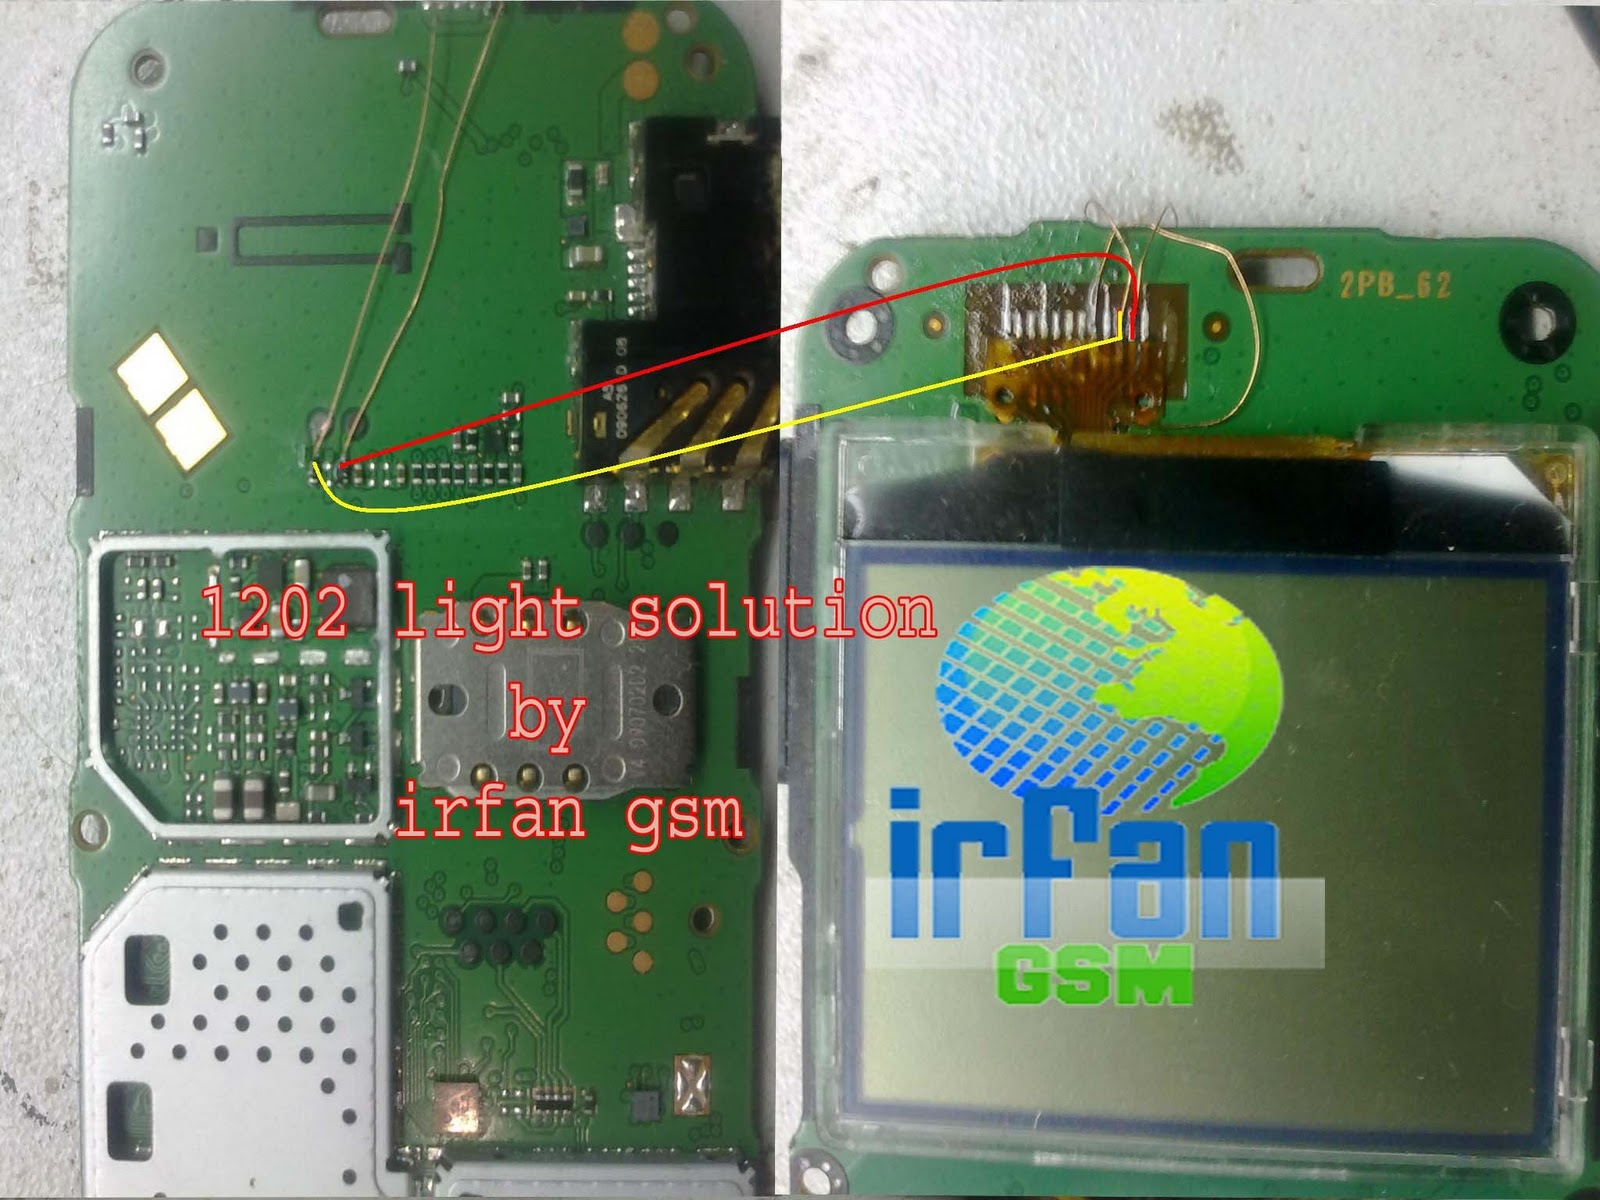 Mobile Guide 2010 Line Sim Bb9800 Short Circuit For Repair Gsmforum Nokia 1202 Light Hot Solution